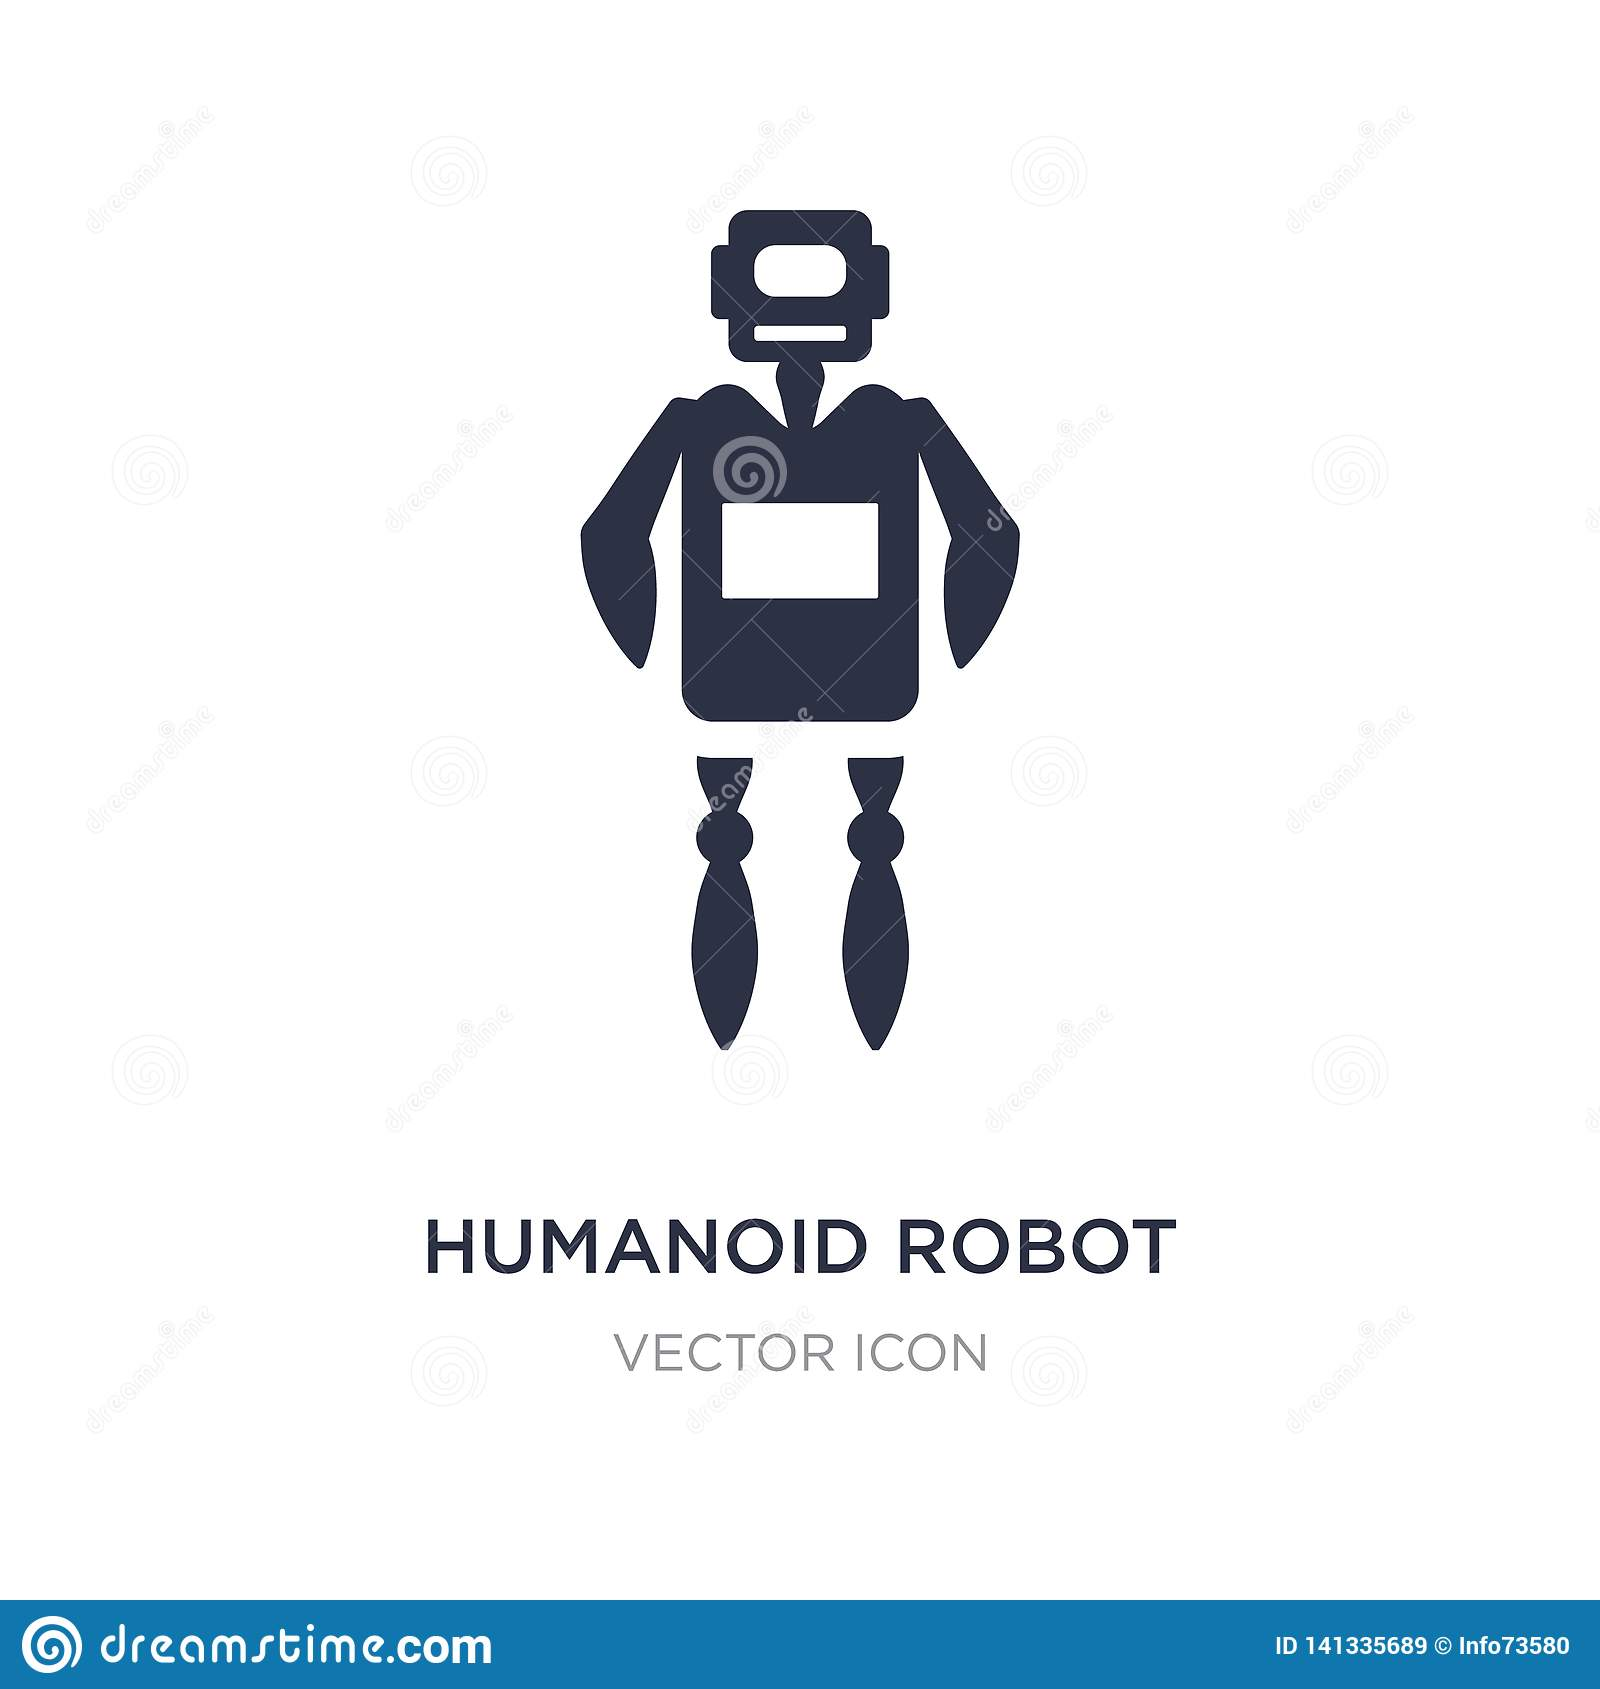 humanoid robot icon on white background. Simple element illustration from Technology concept